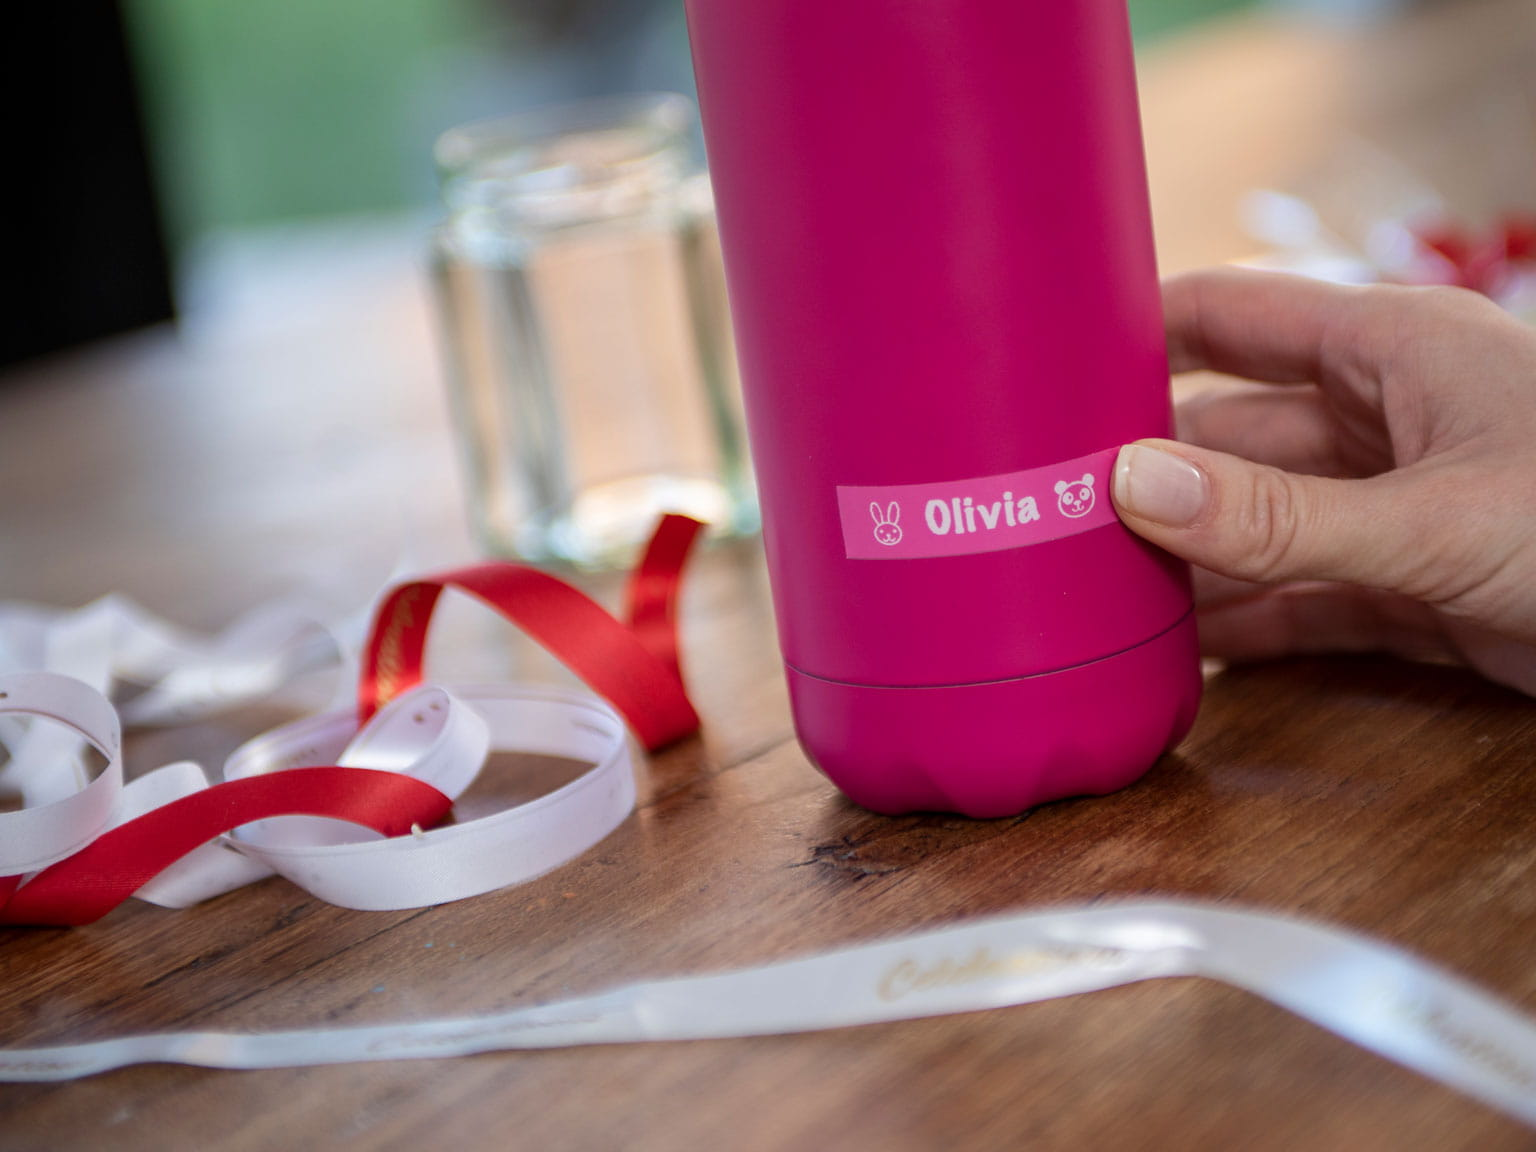 Brother pink label on pink water bottle with white and red ribbons